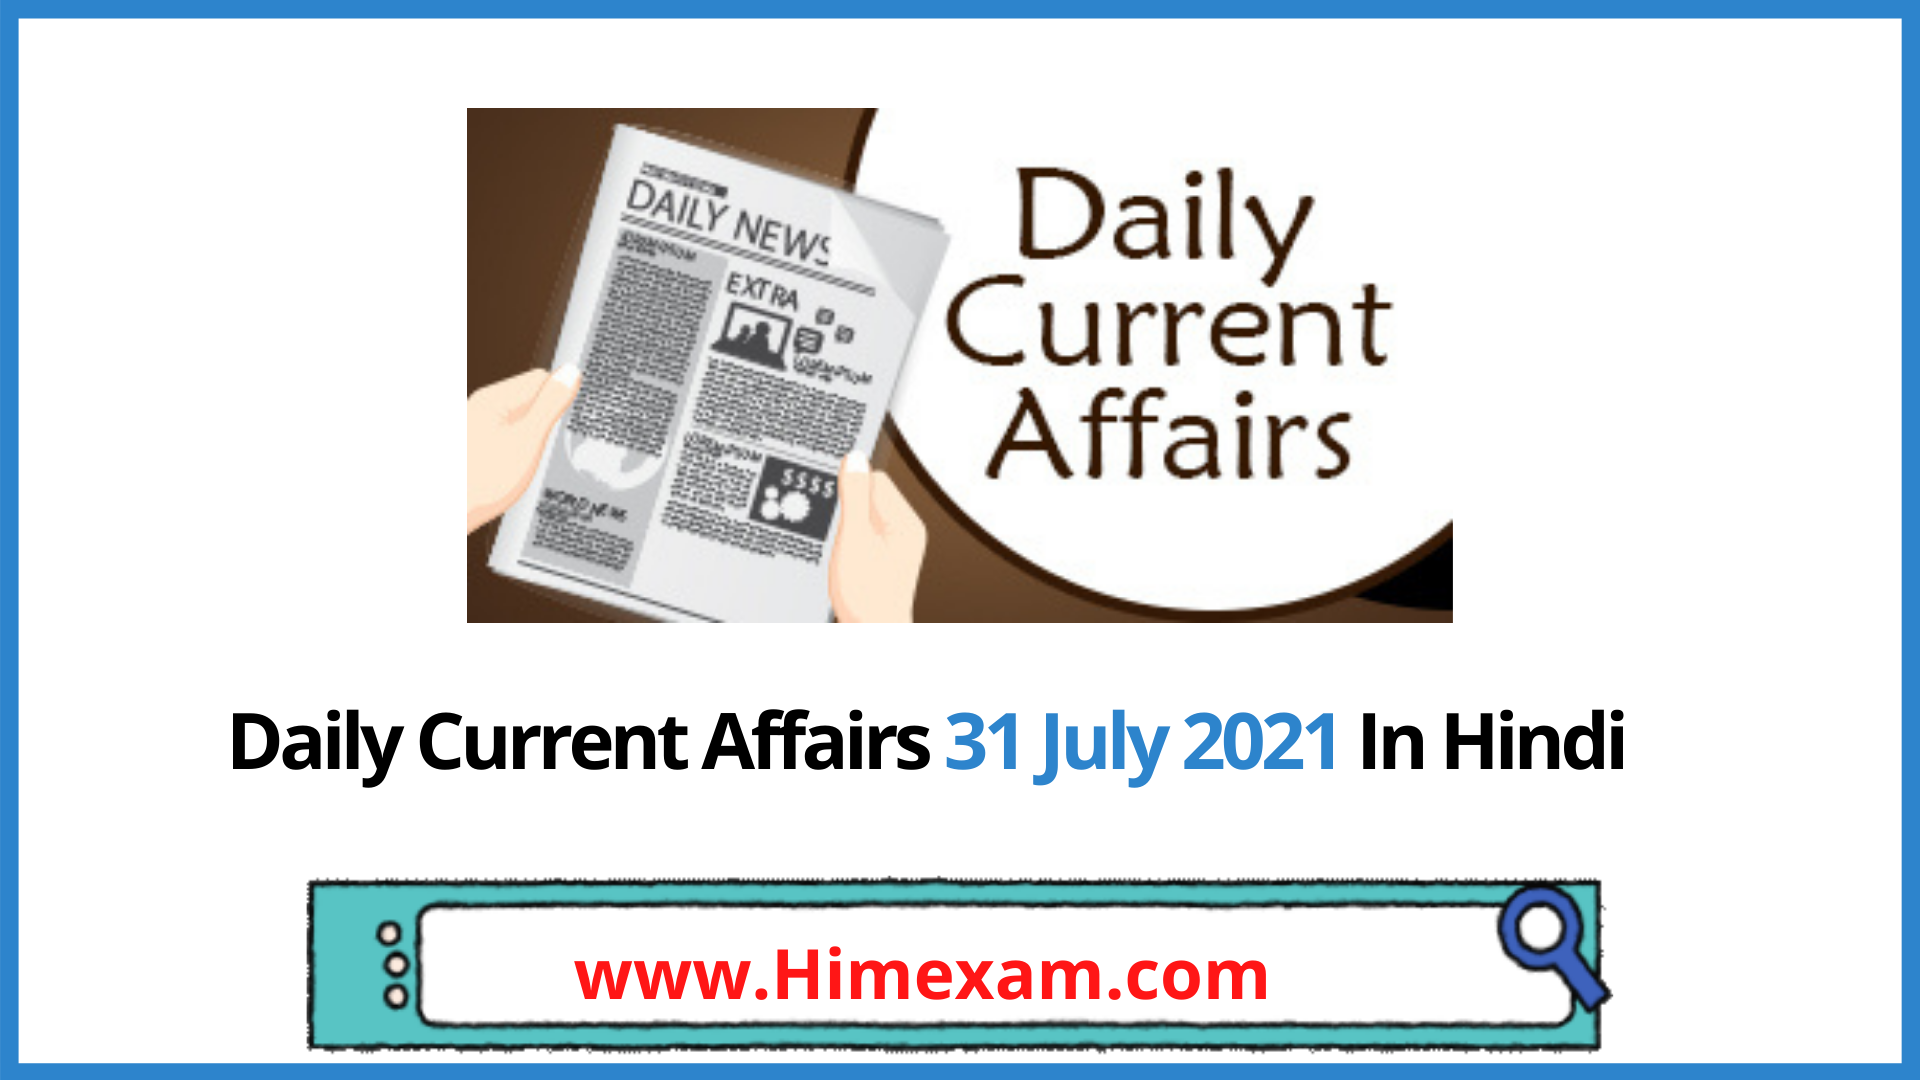 Daily Current Affairs 31 July 2021 In Hindi